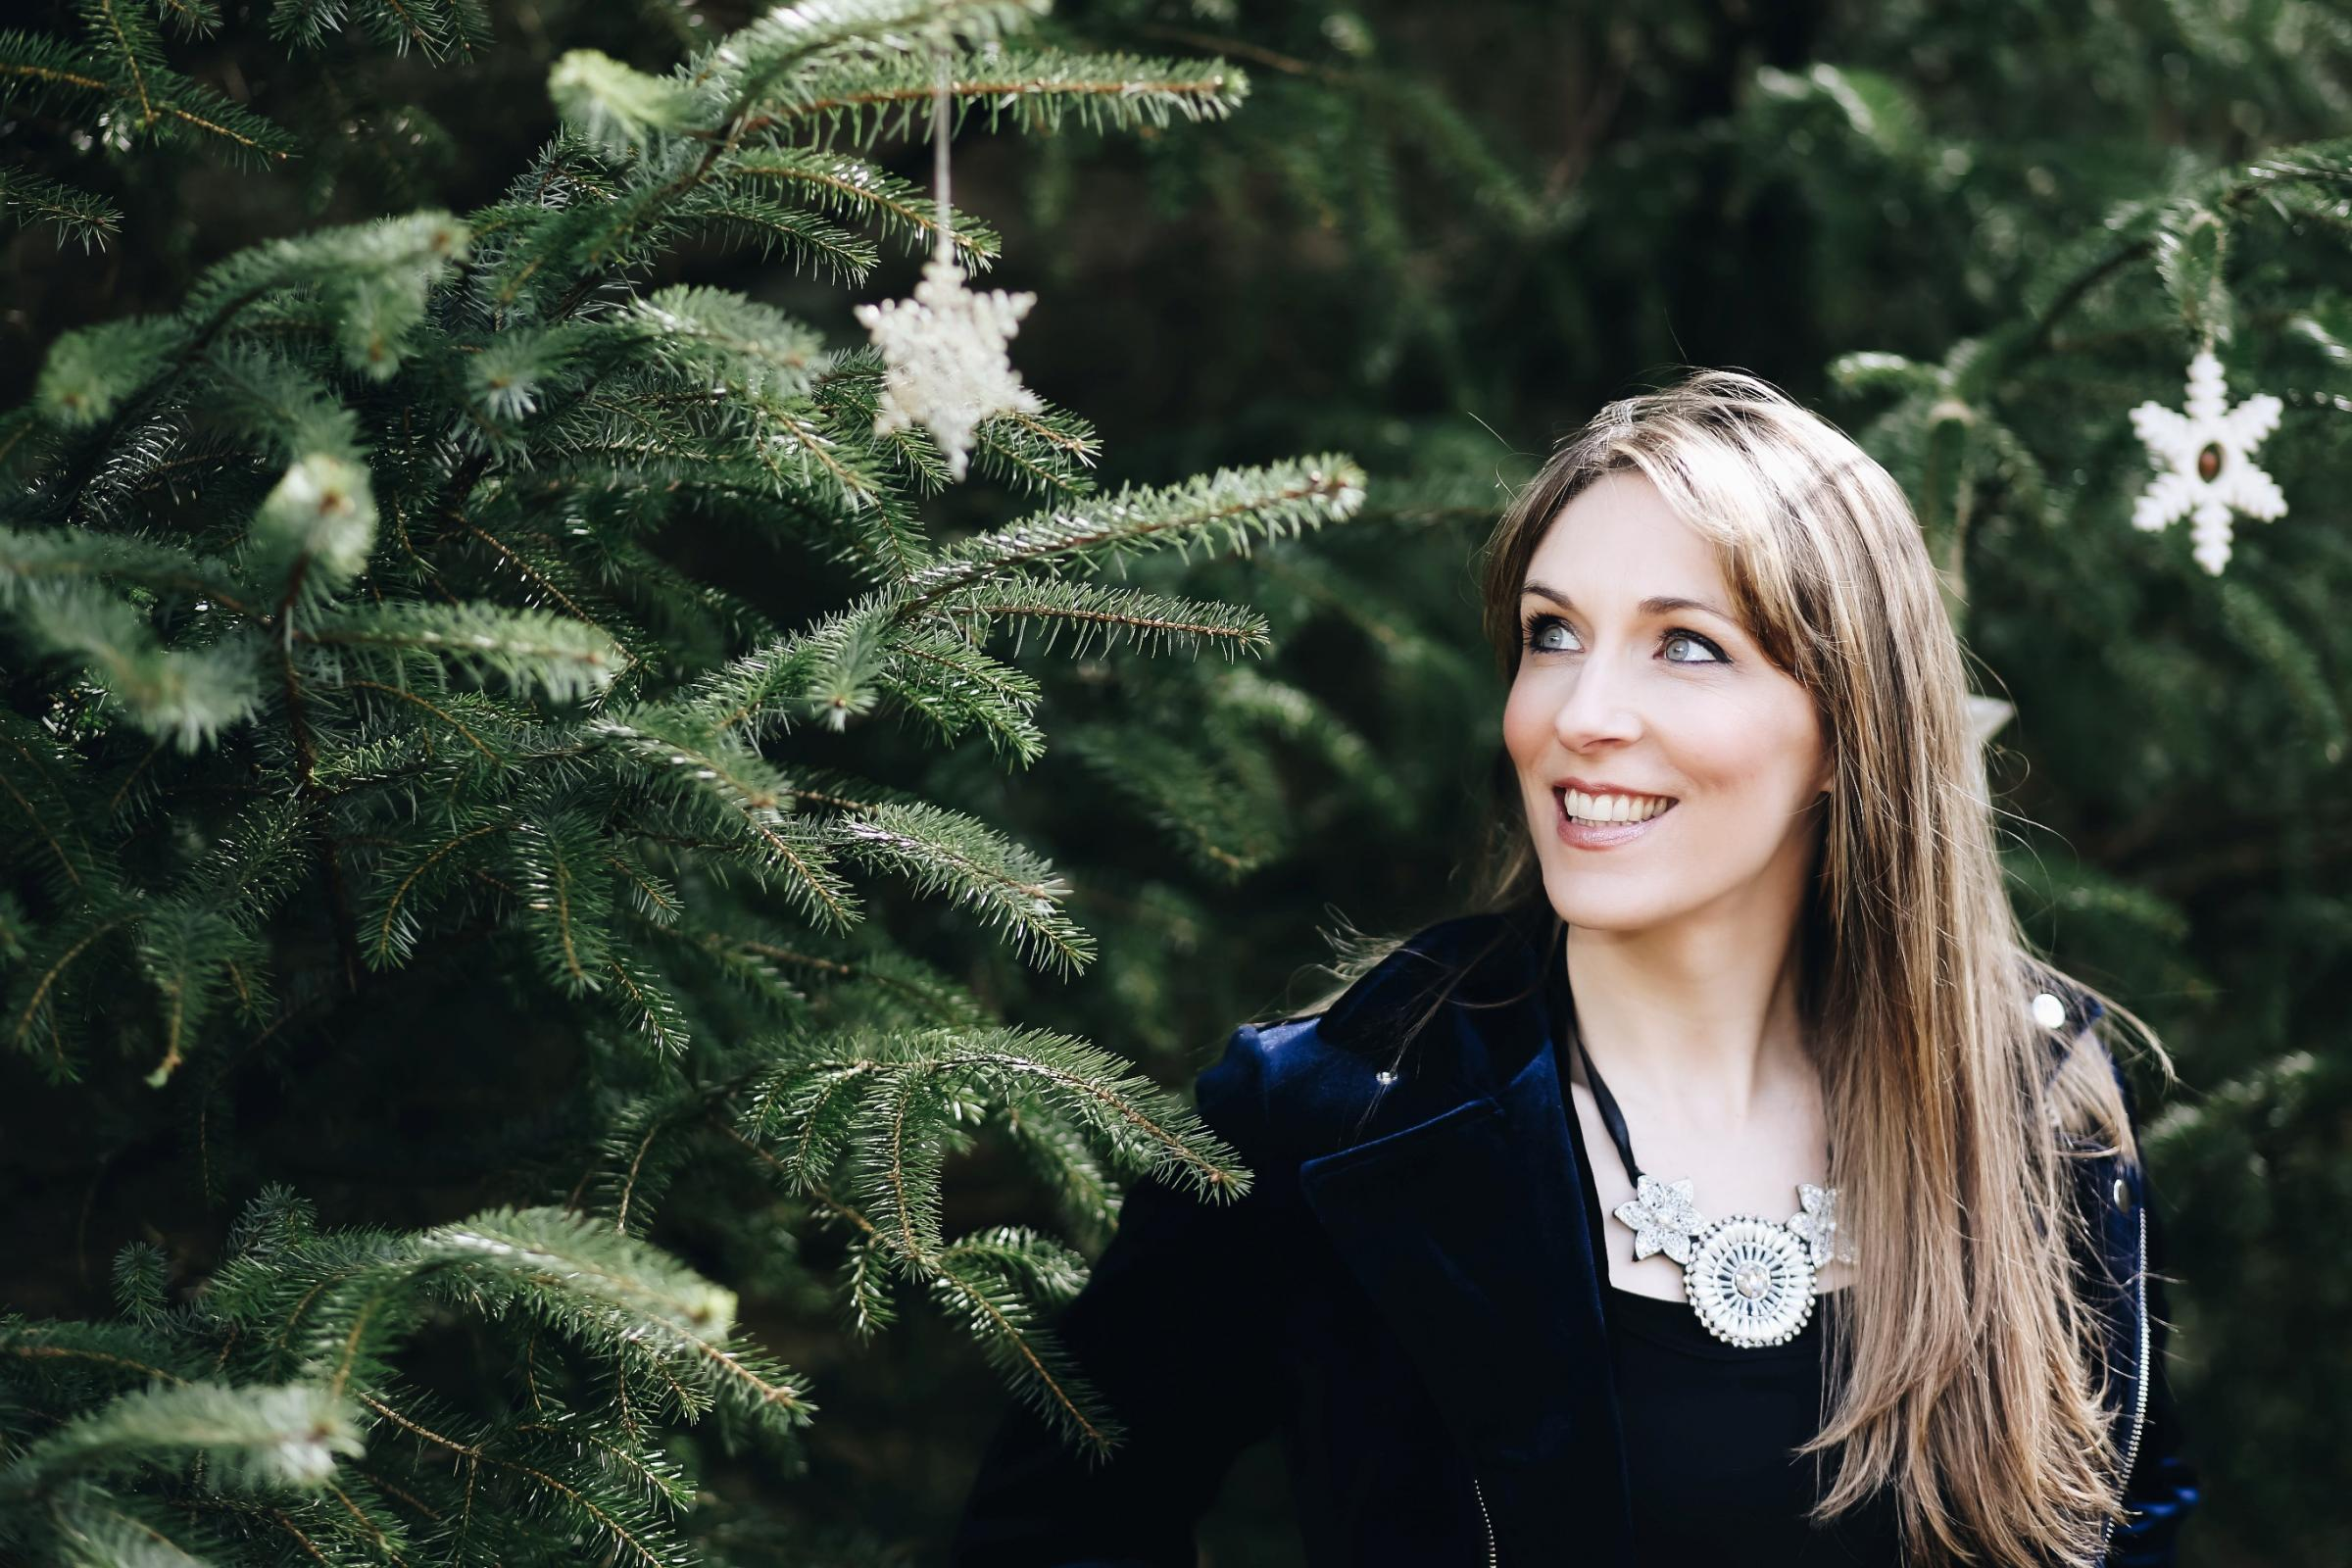 Emily Smith 'Songs for Christmas' Tour